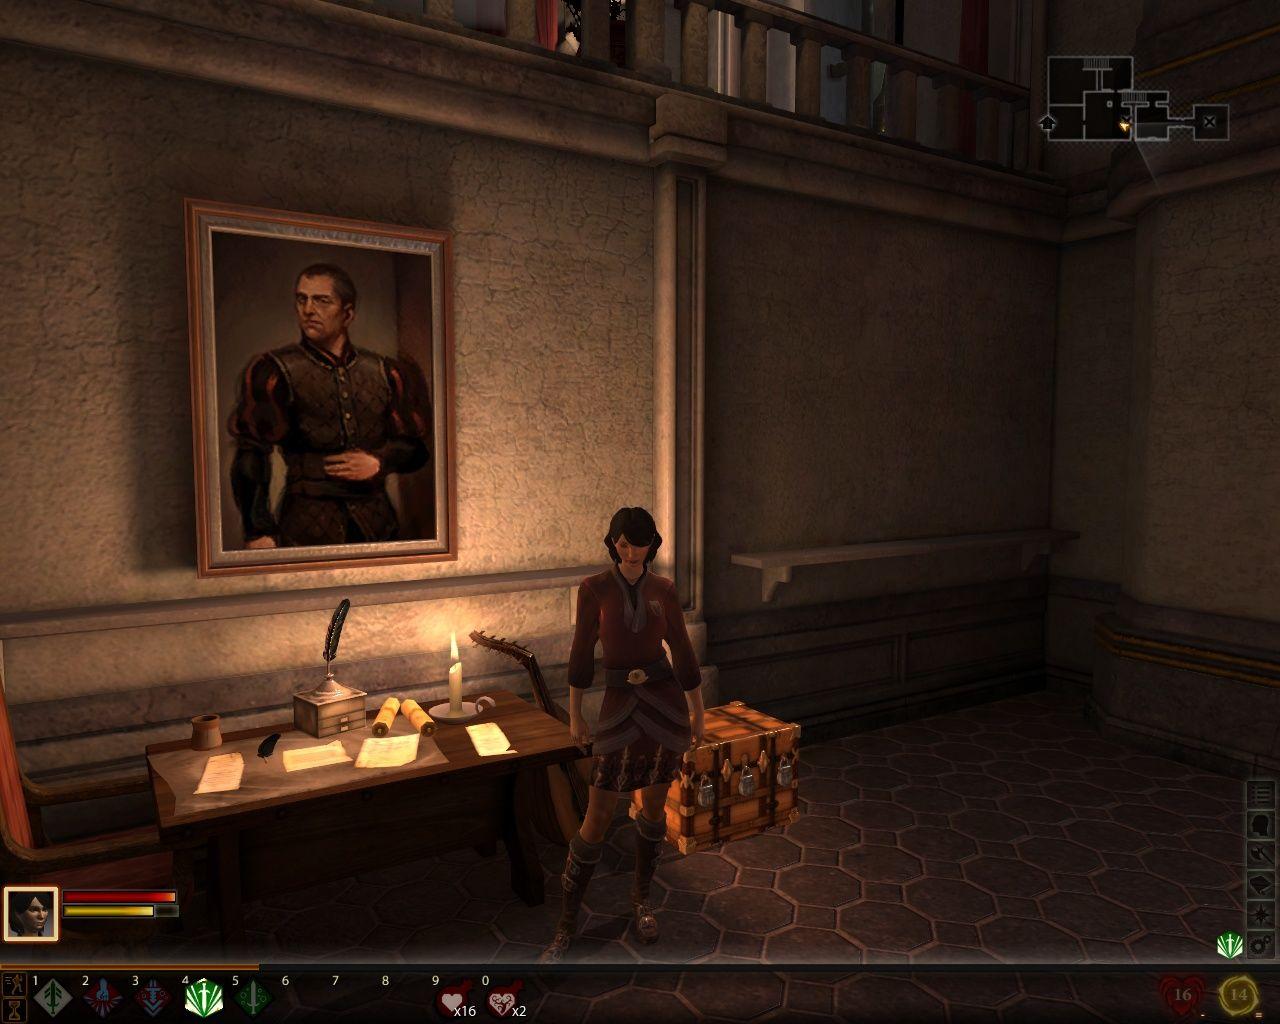 Dragon Age II Windows As you complete quests, you become wealthier. You move to your own Hawke estate. Looks lovely, don't you think?